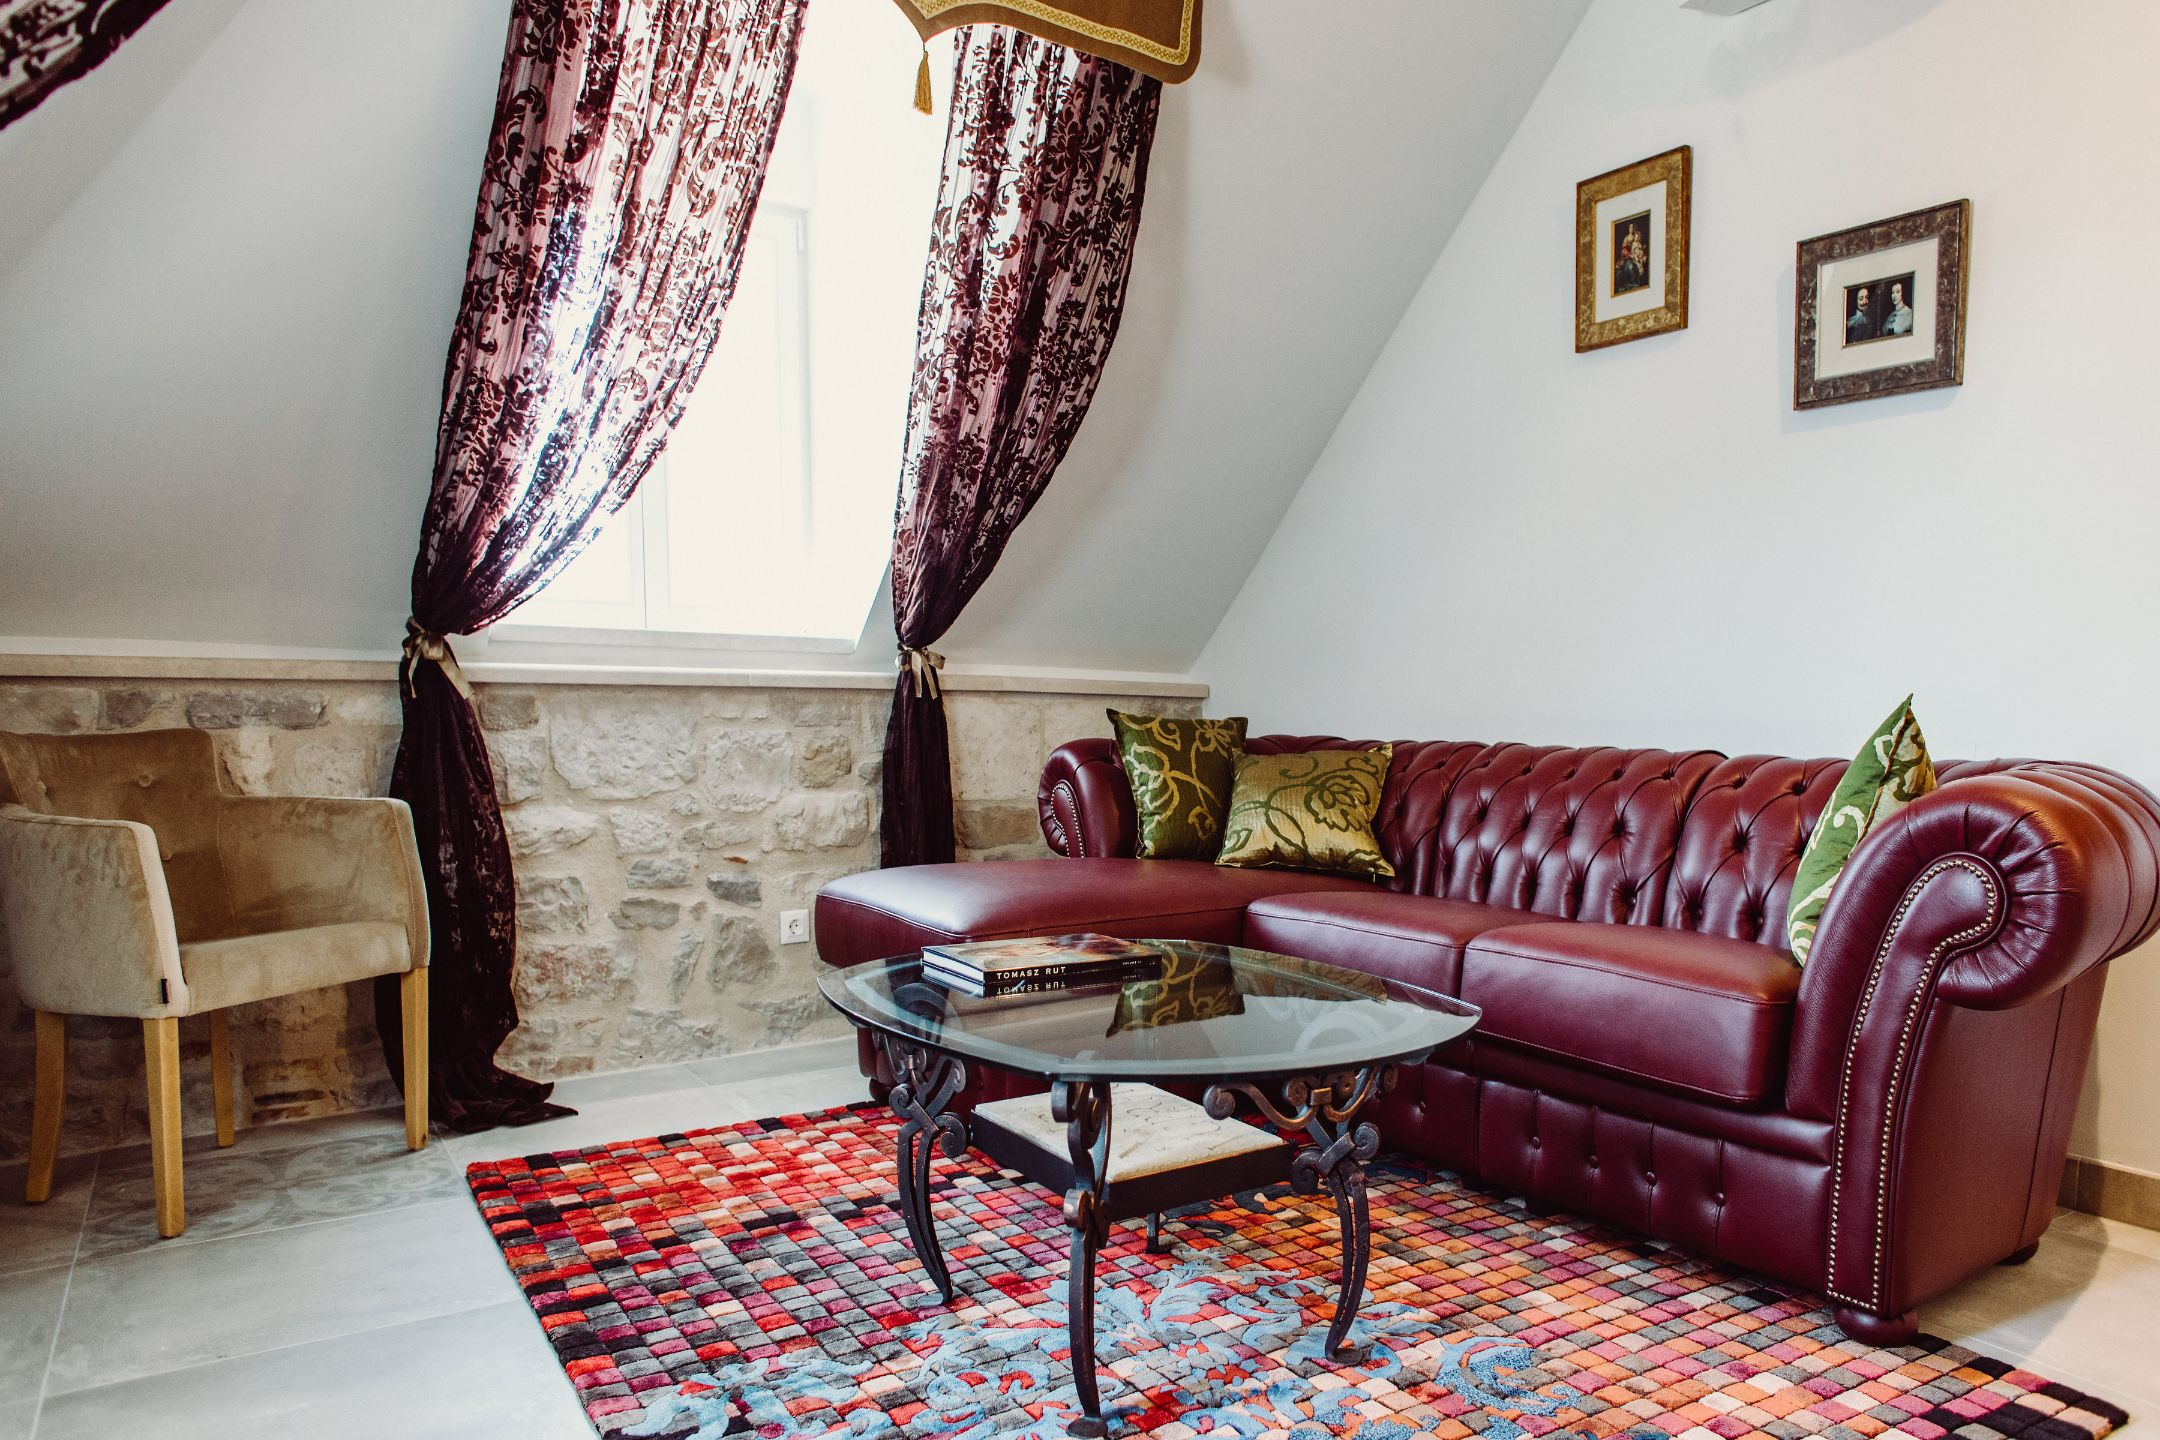 Majestic City Center Apartment with Authentic Decor on Palace Square